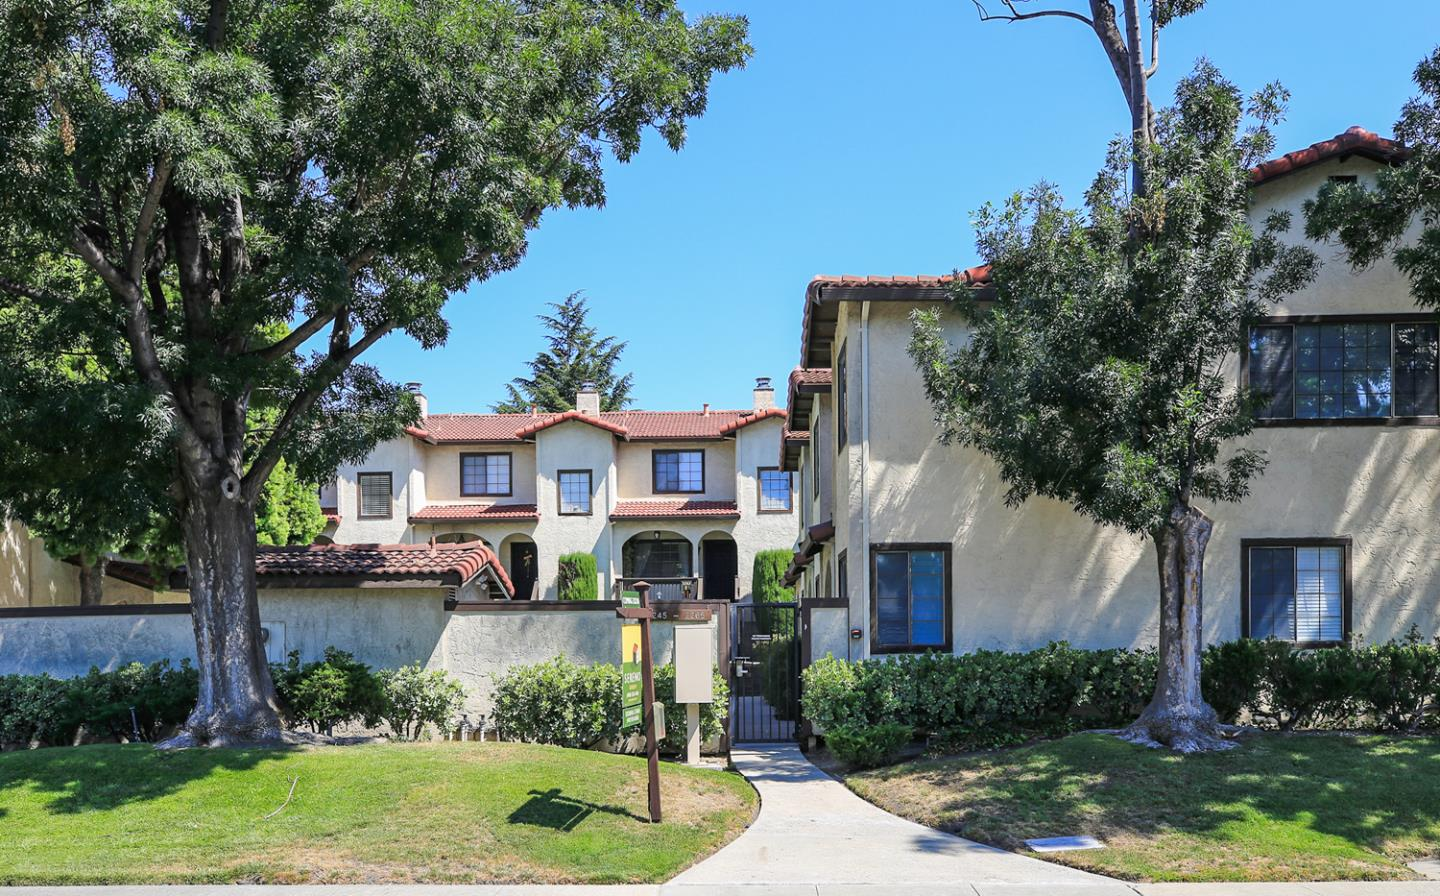 Additional photo for property listing at 2251 Anna Drive  Santa Clara, California 95050 Estados Unidos